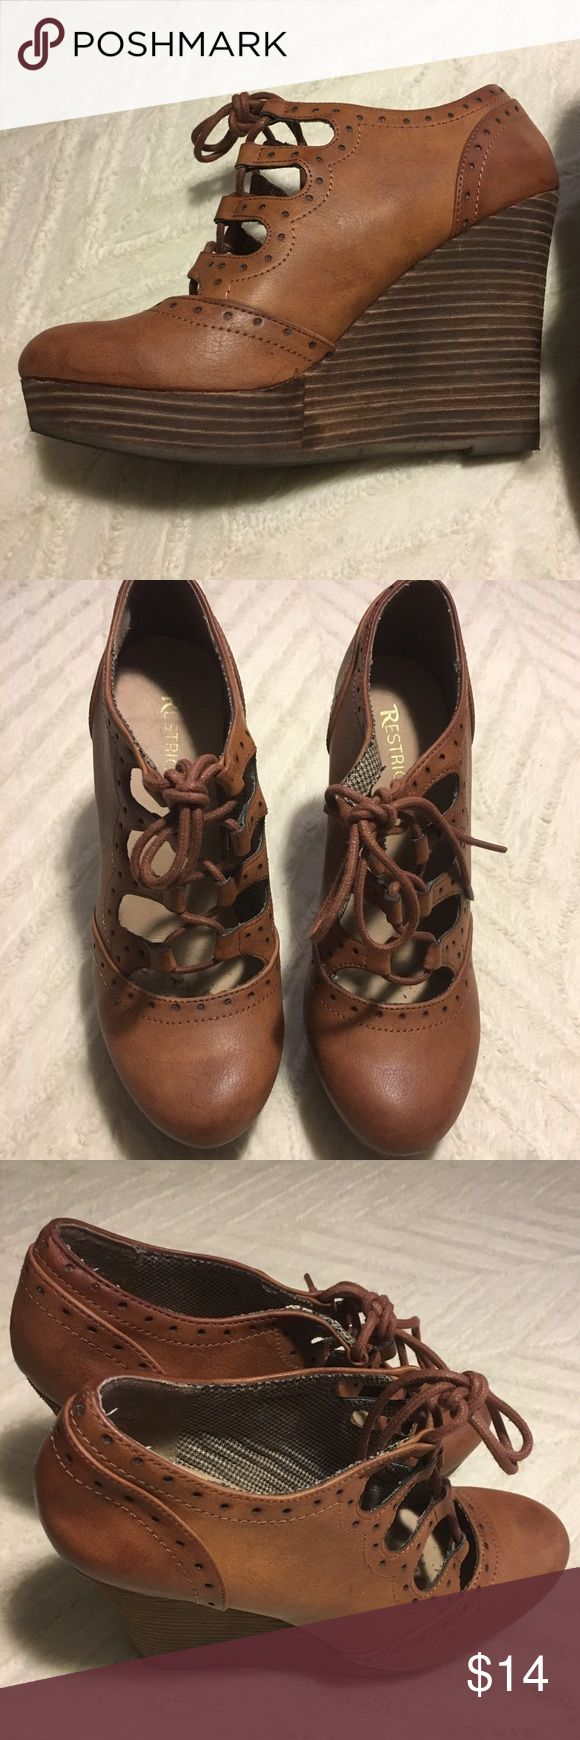 Restricted Brown Wedges Great condition, only work a couple times. Light brown wedges, size 8 Restricted Shoes Wedges